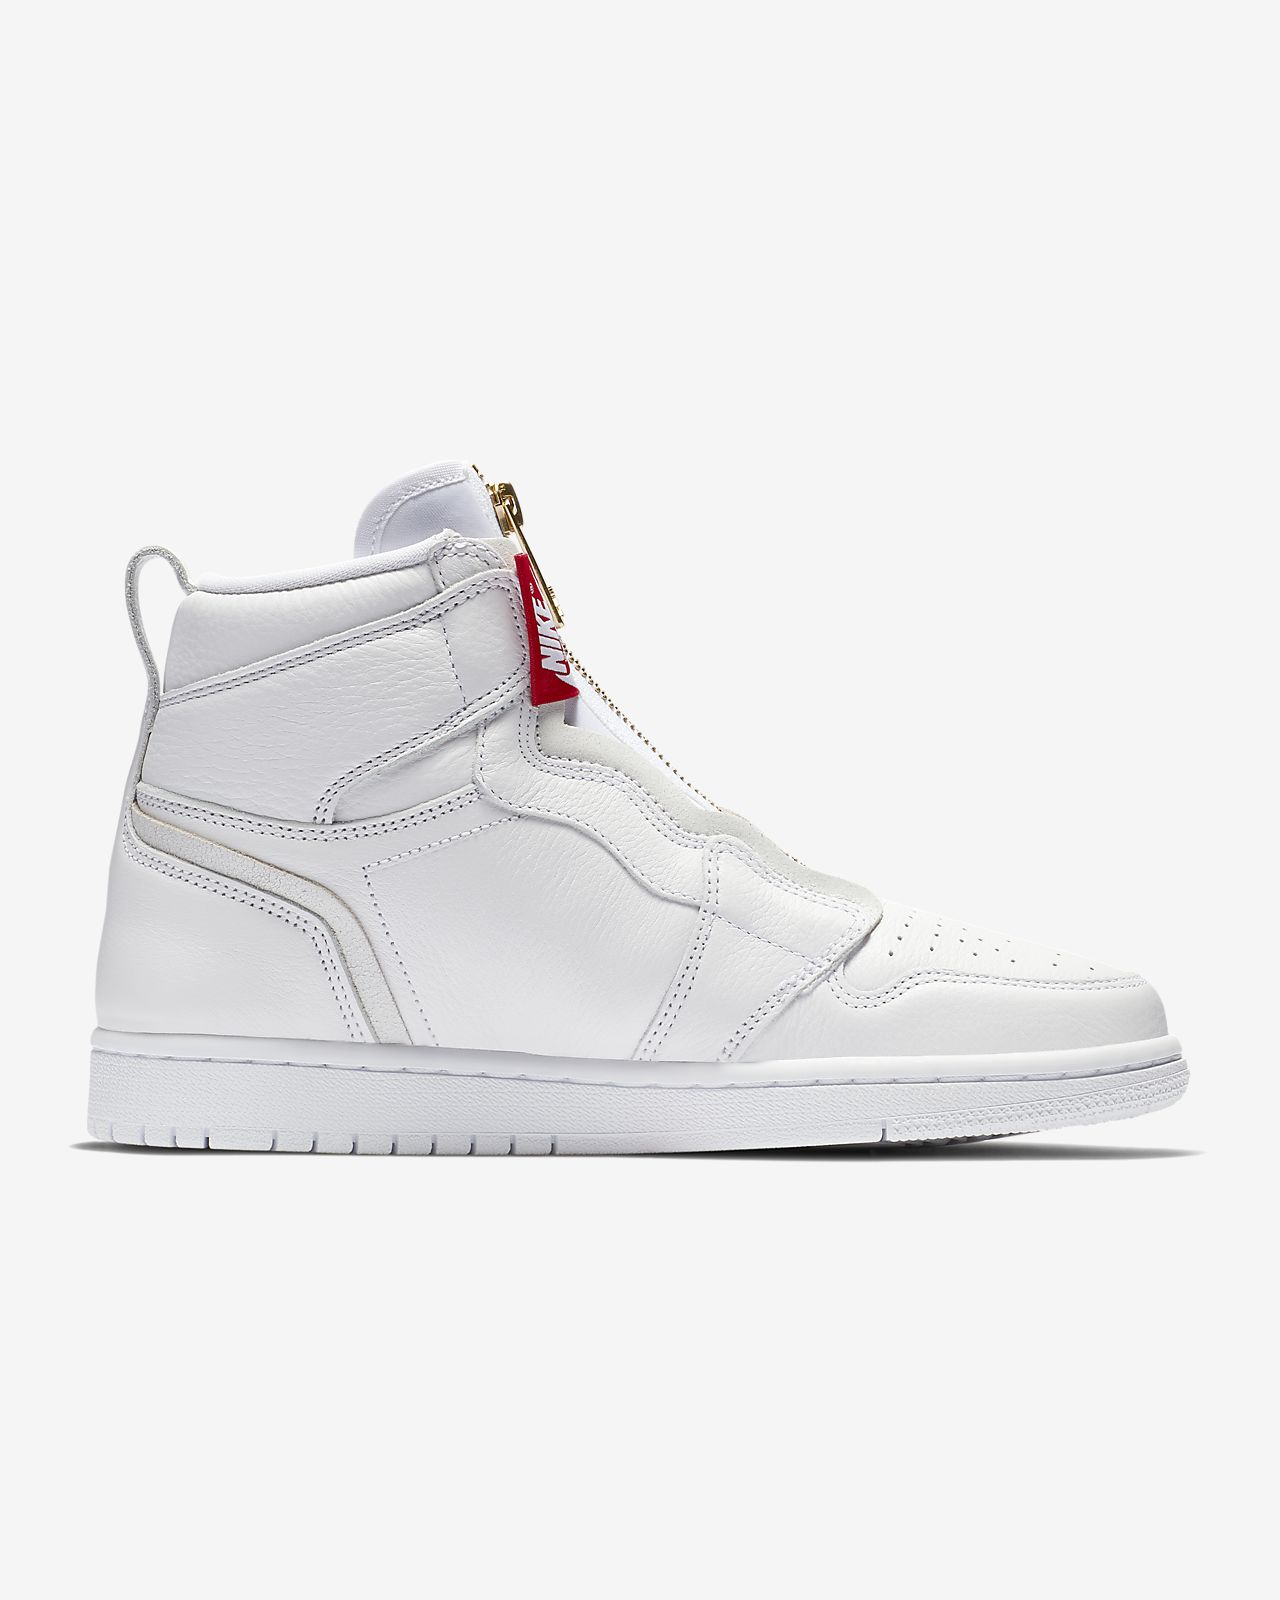 jordan 1 shoes women